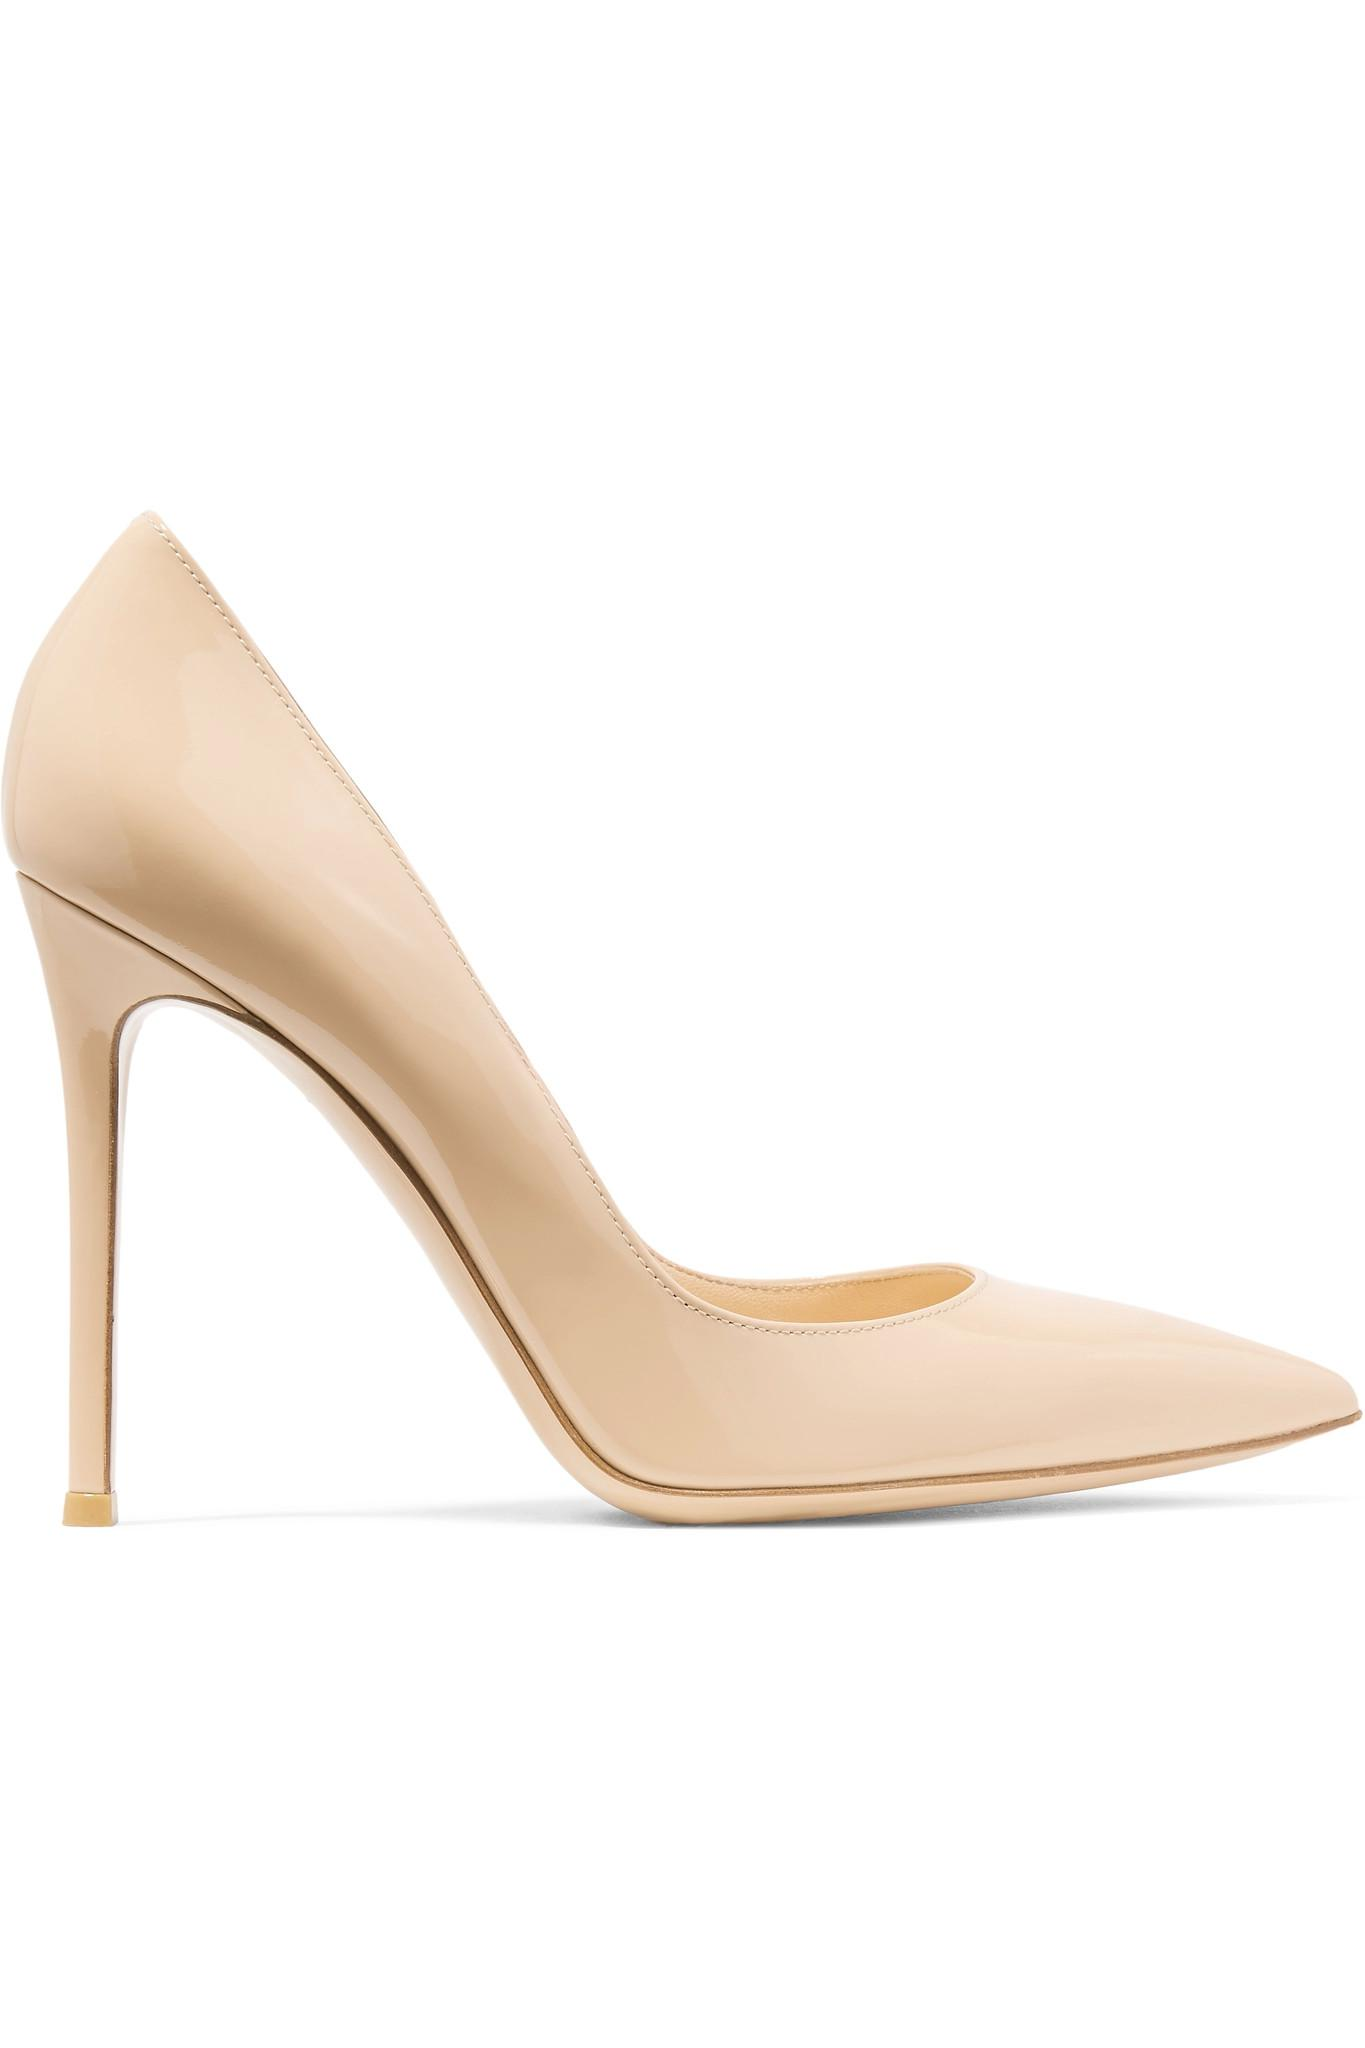 Le Meilleur Gianvito Rossi 105 Patent Leather Pumps In Natural Lyst Ce Mois Ci